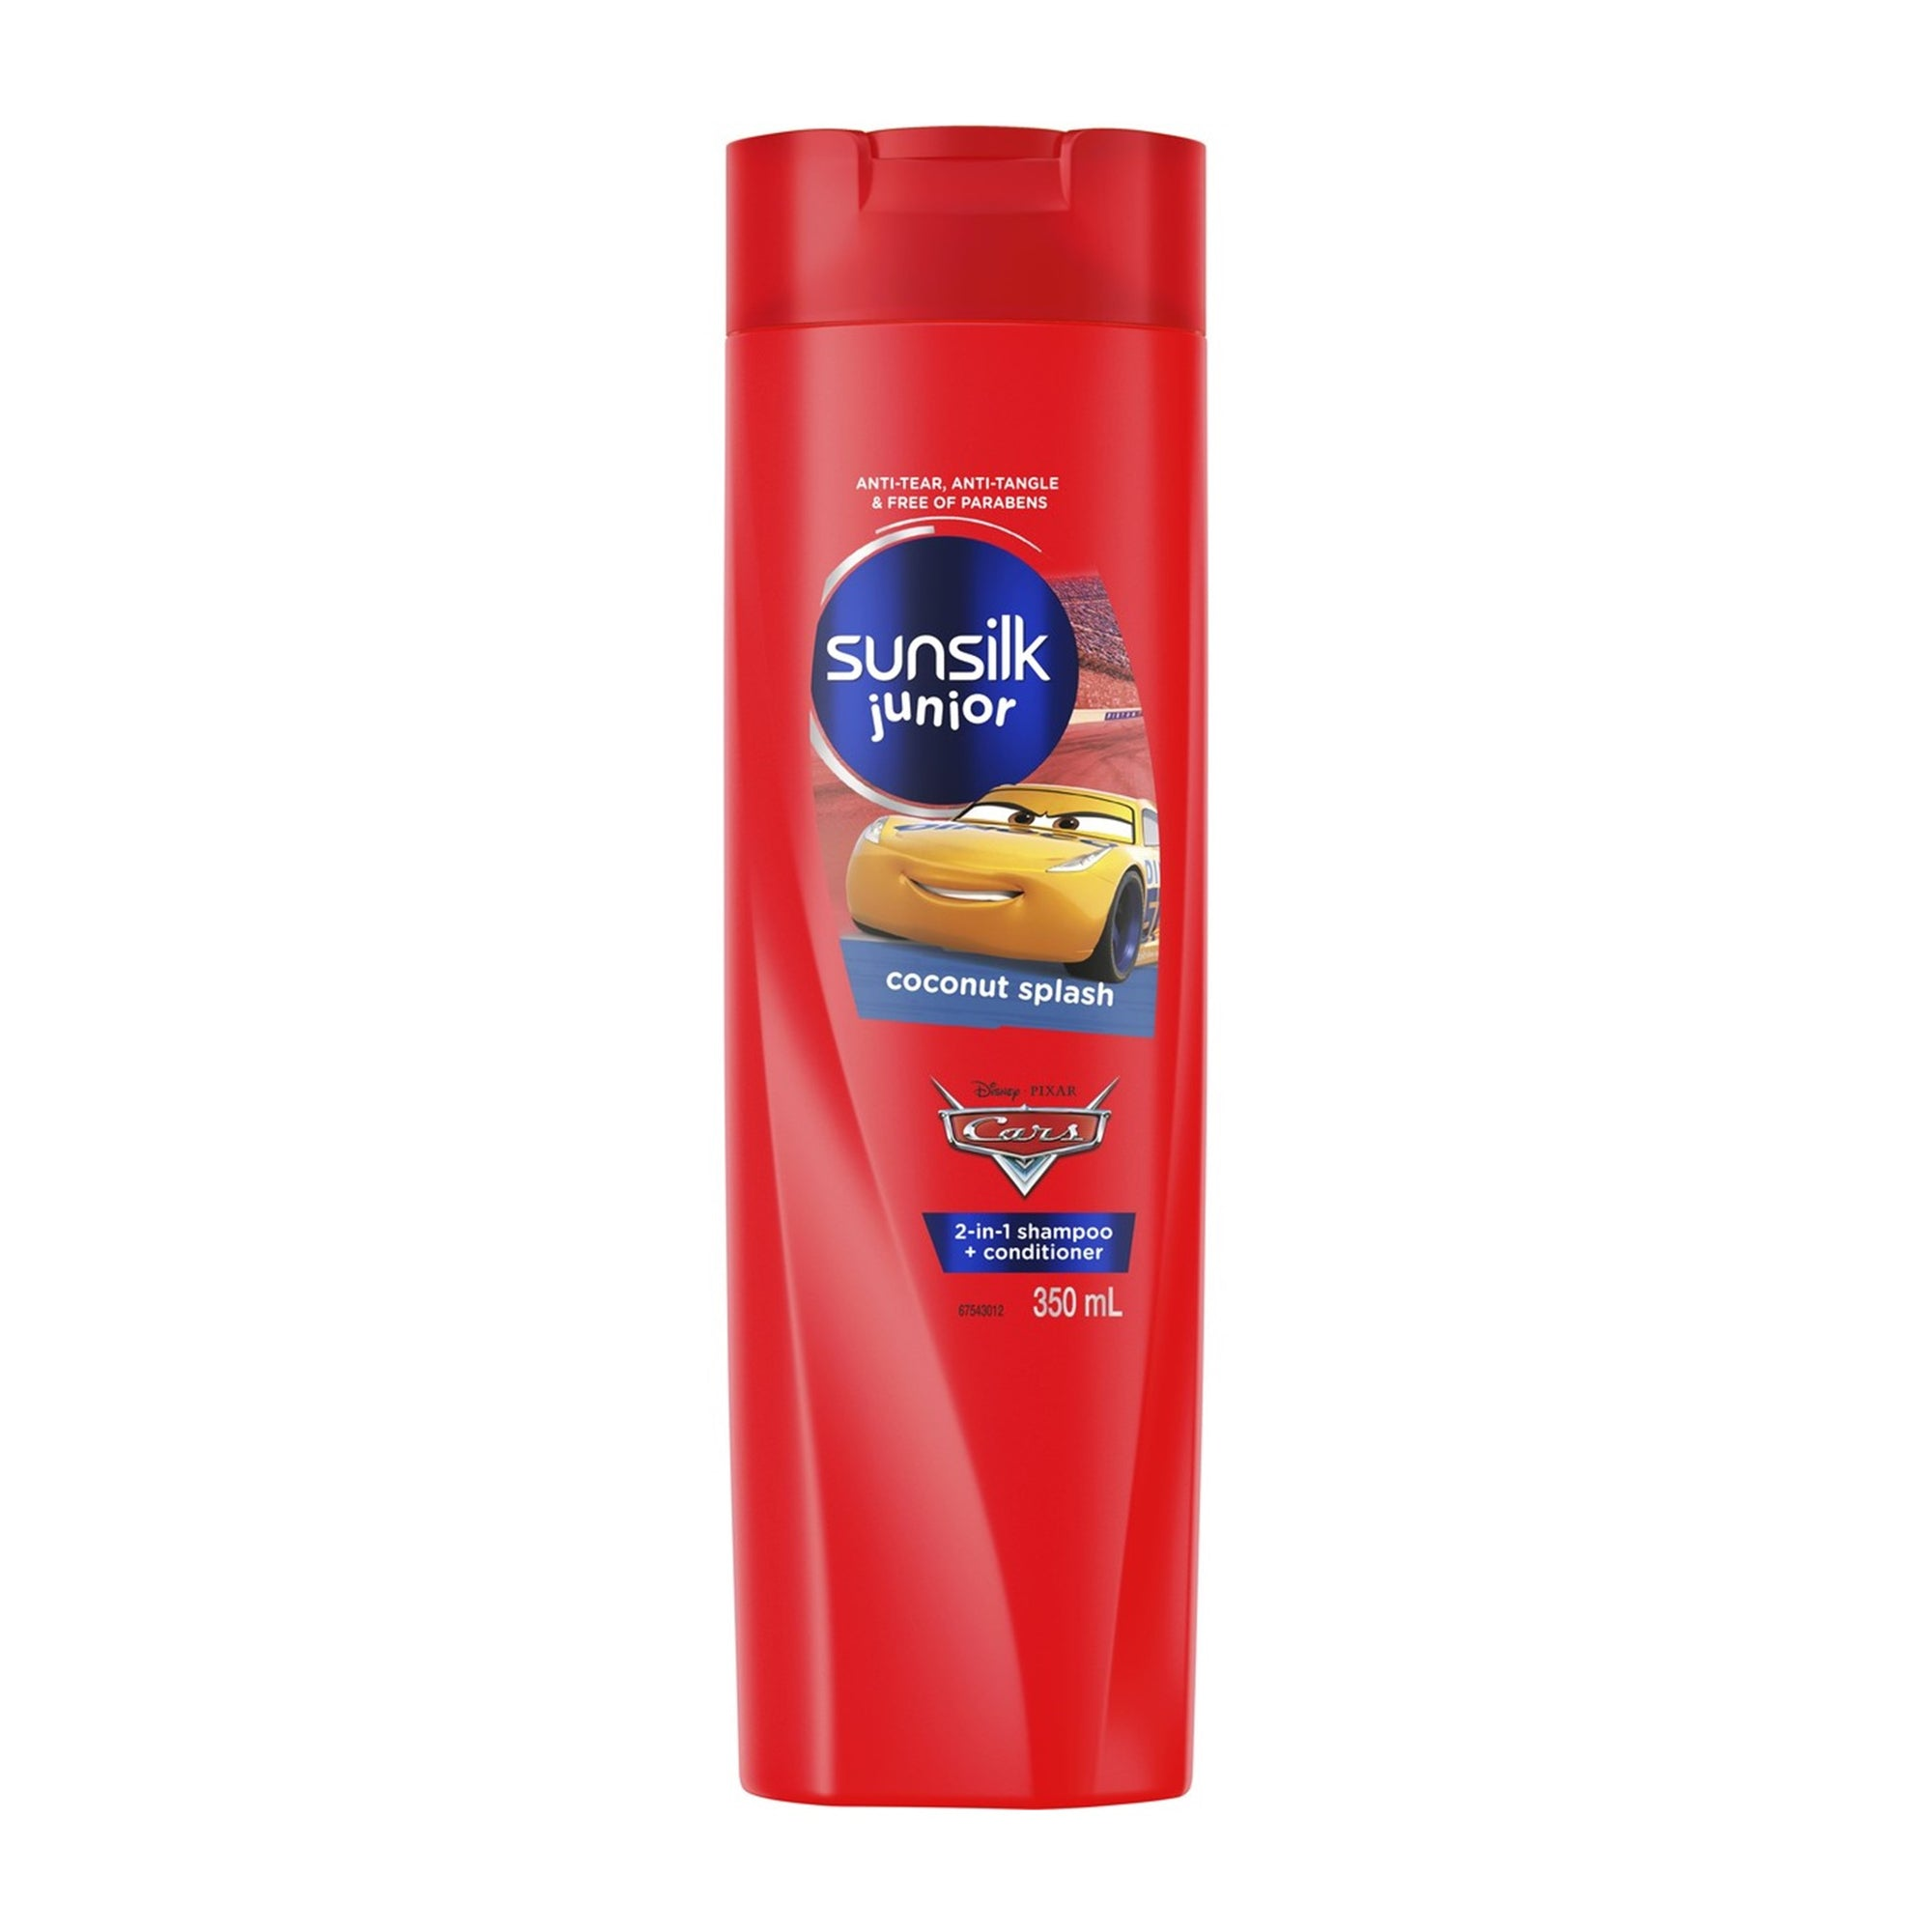 Sunsilk Junior Shampoo & Conditioner 2In1 Cars 350Ml